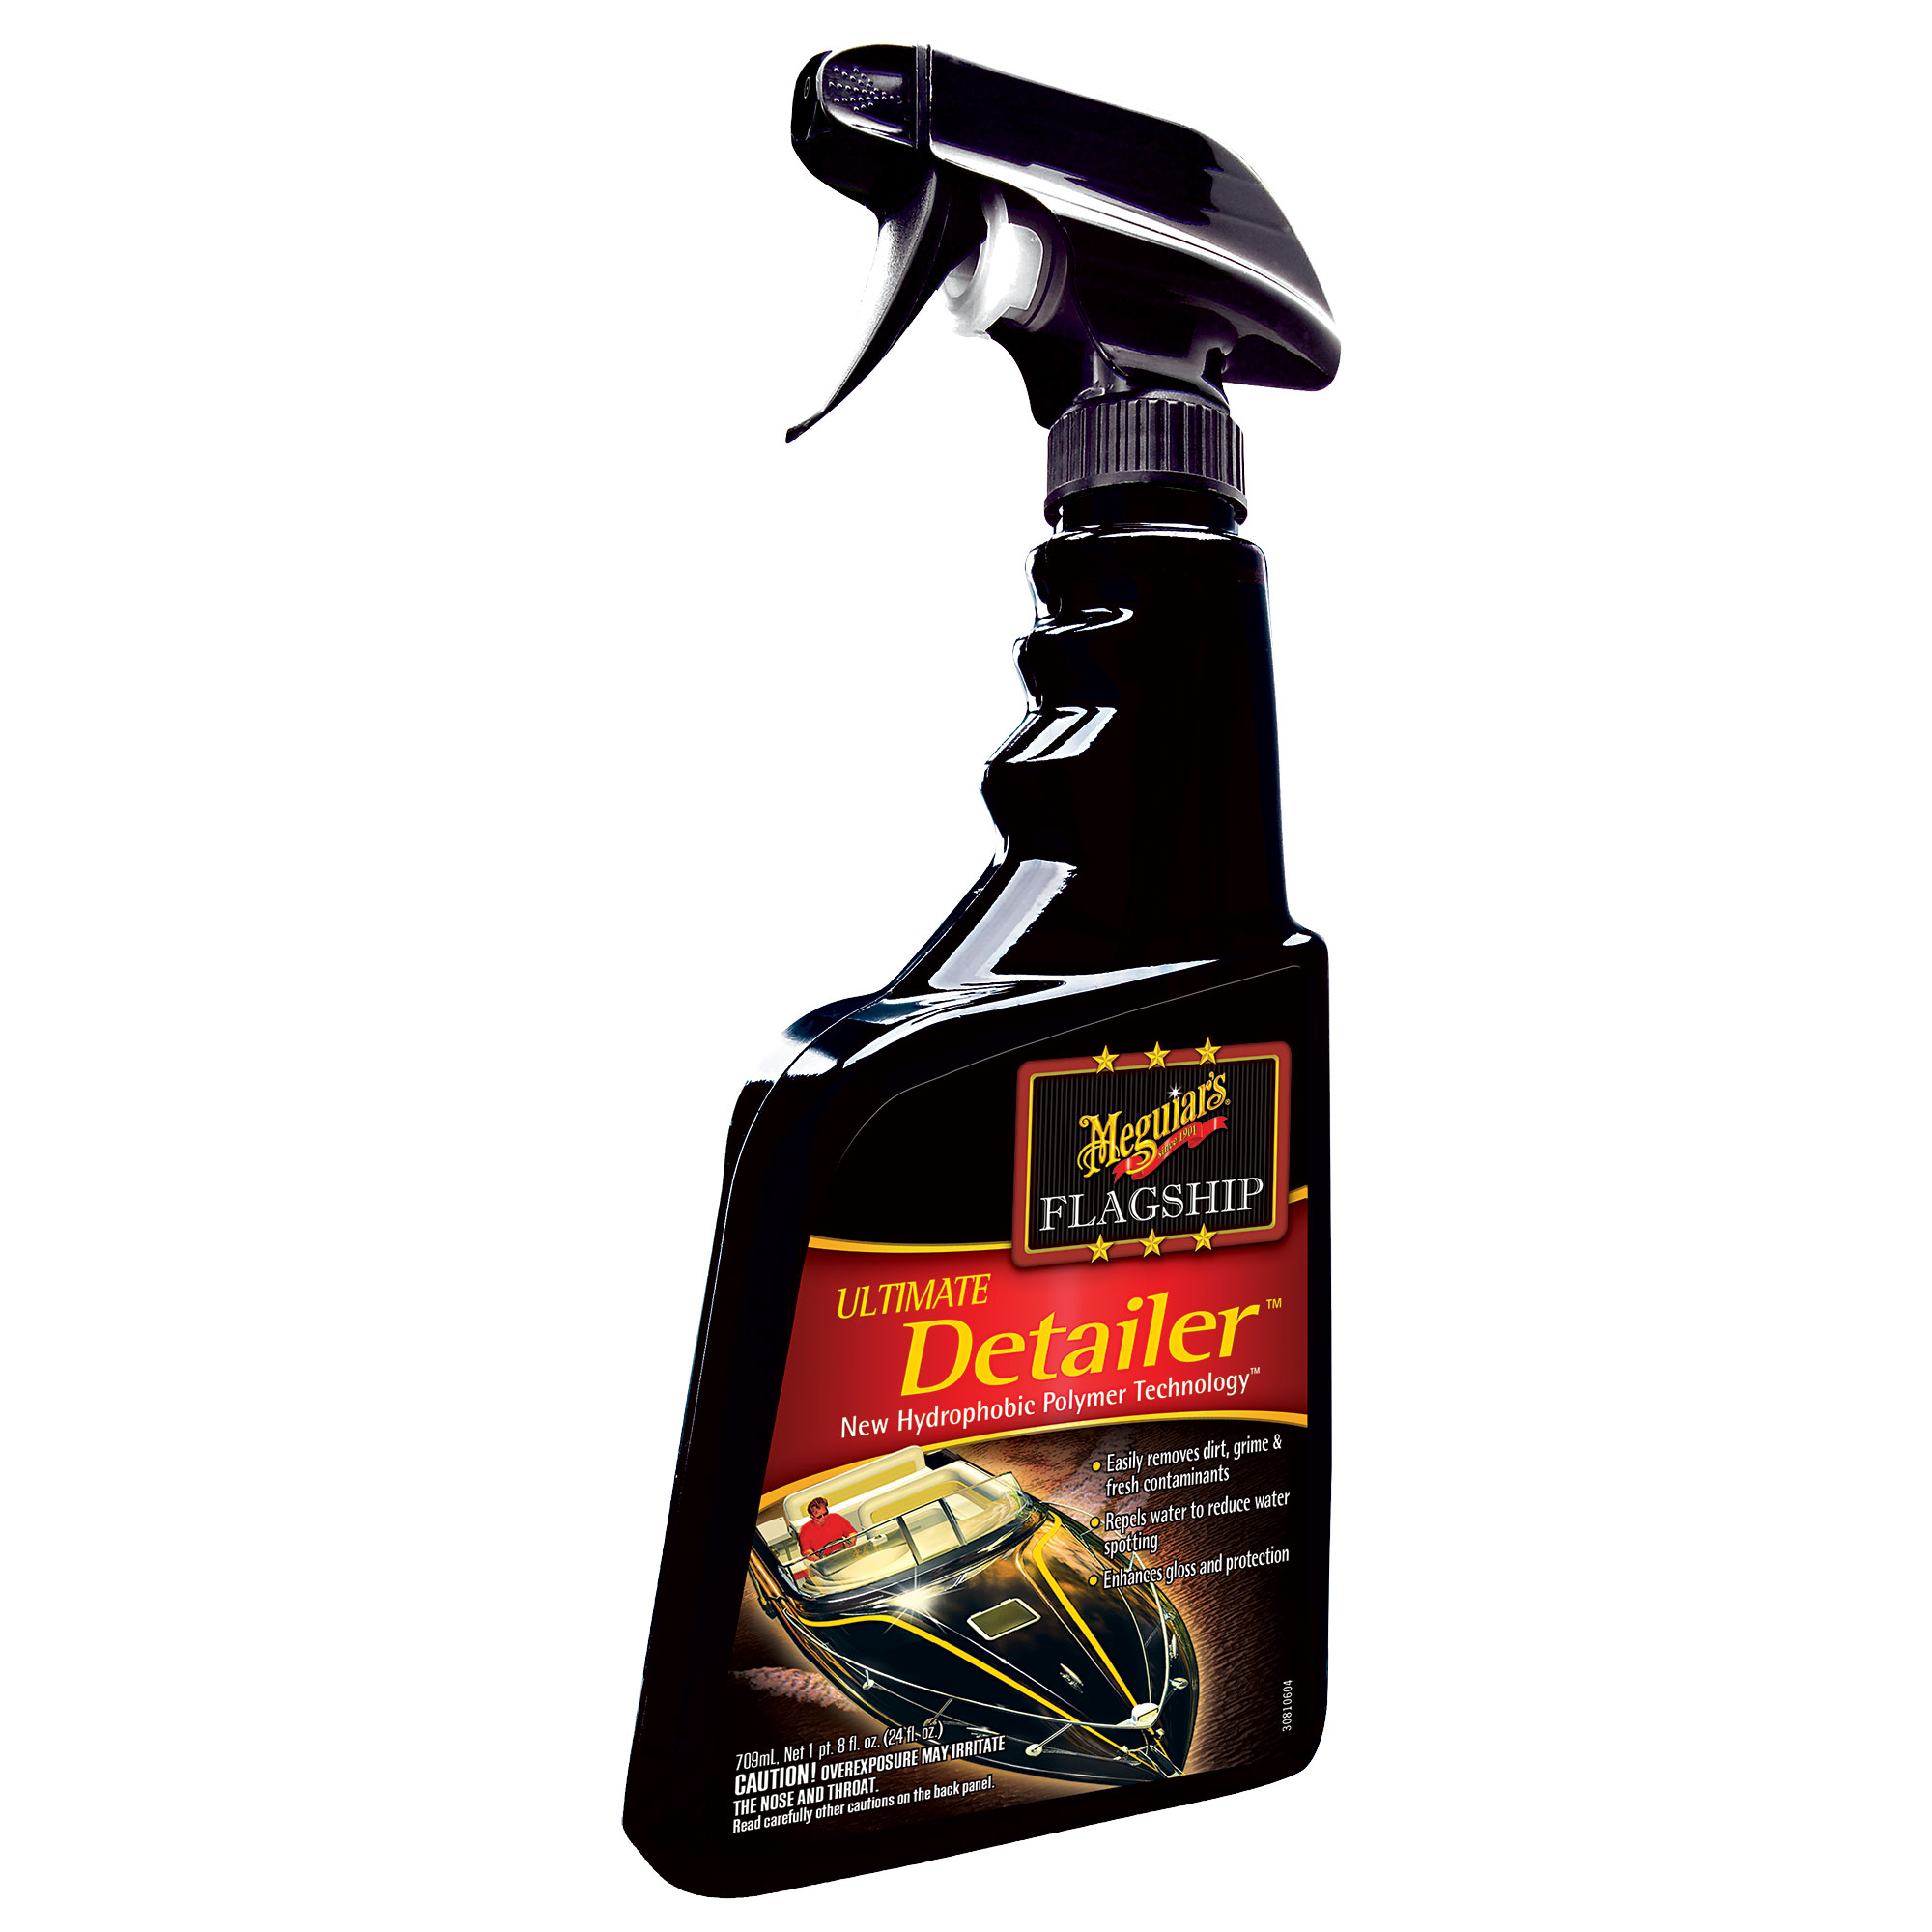 7 Boat Vinyl Care Products Tested | Boating Magazine